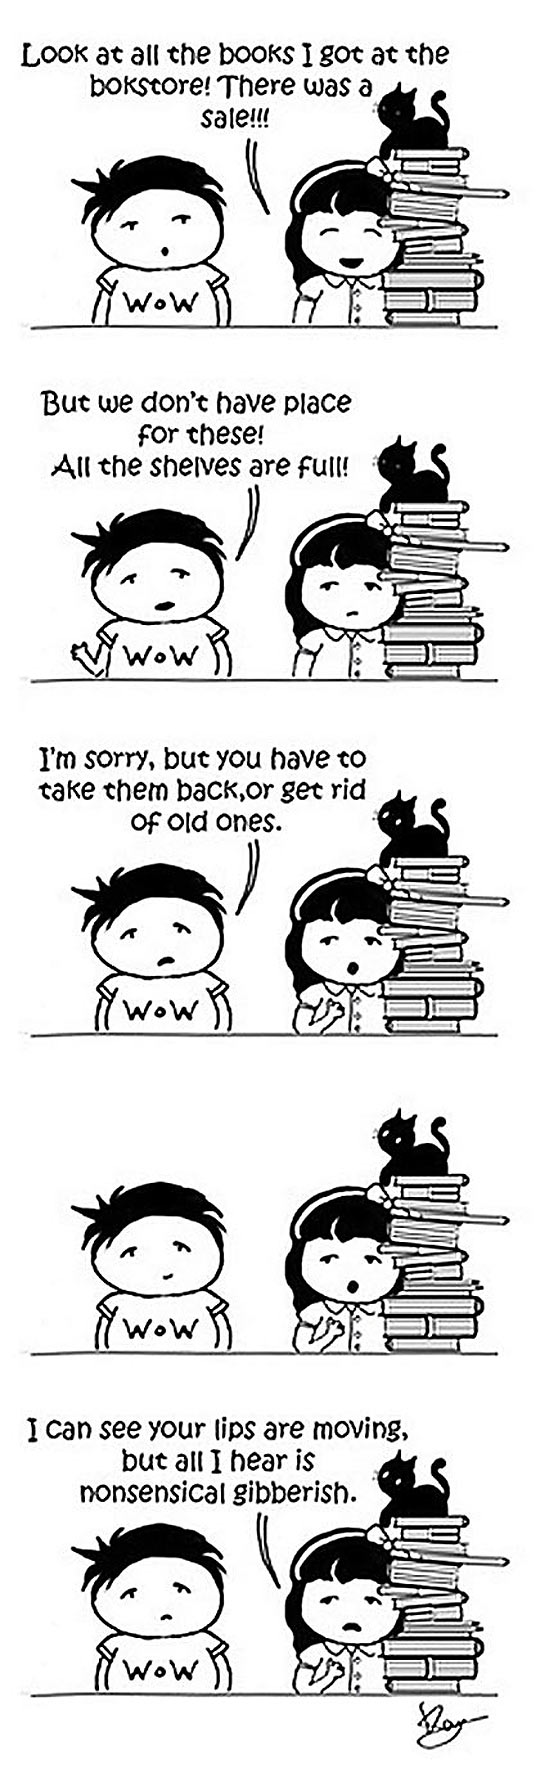 cool-old-books-couple-cat-comic